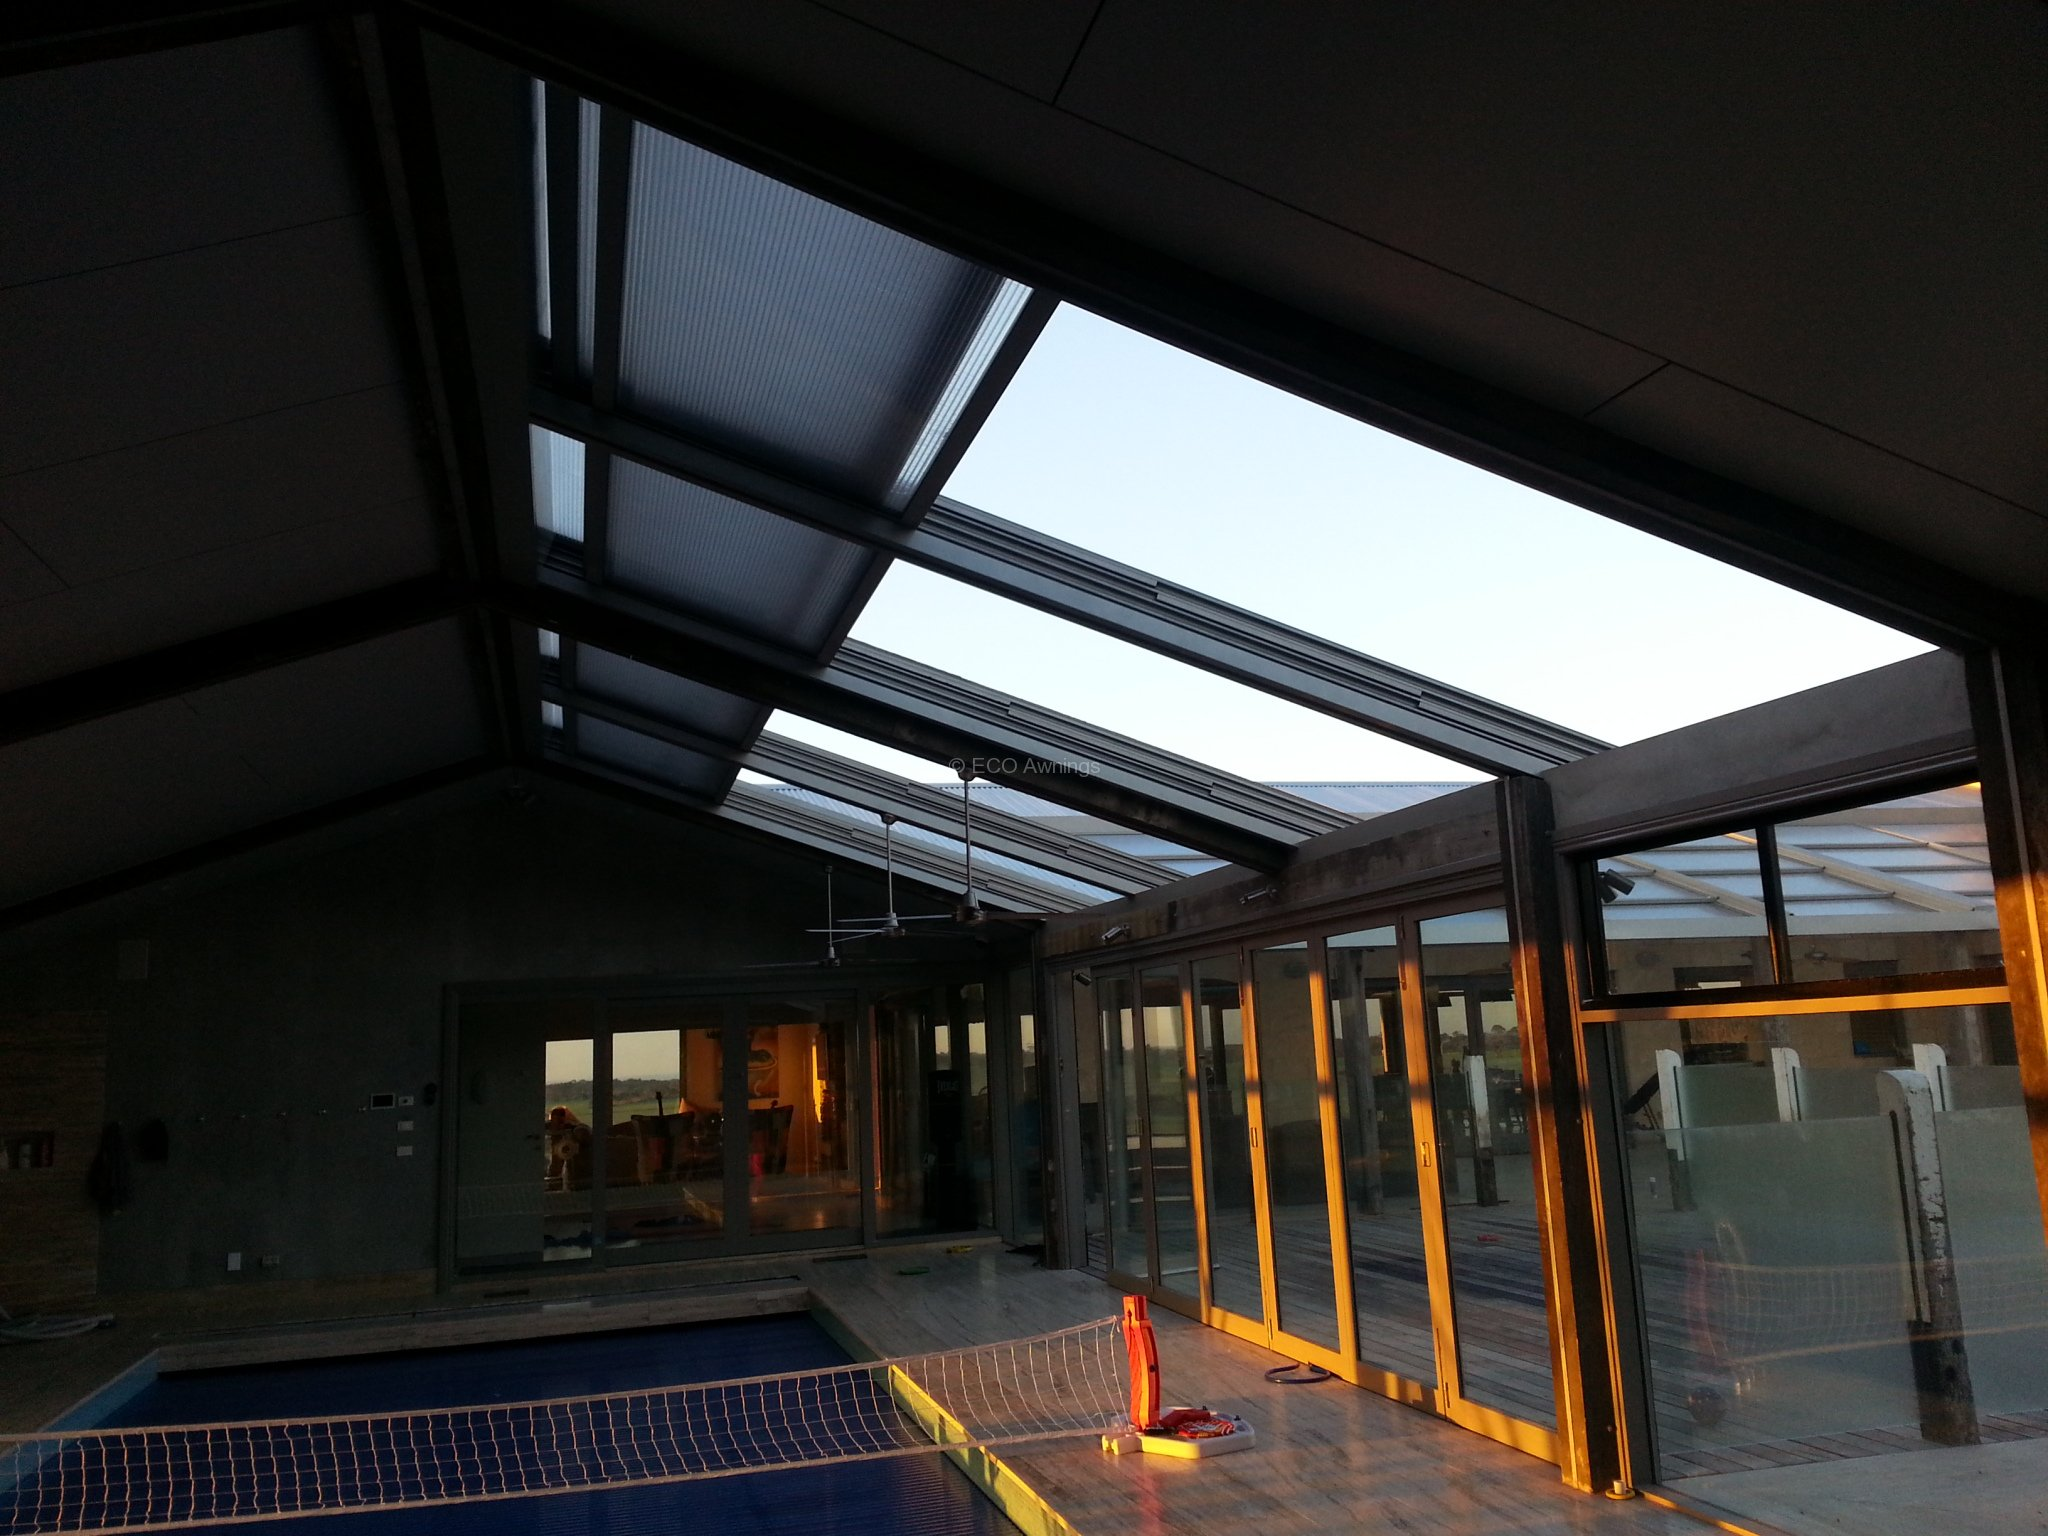 Retracta roof the sliding roof system 4bay 4panel above a for Indoor pool with retractable roof